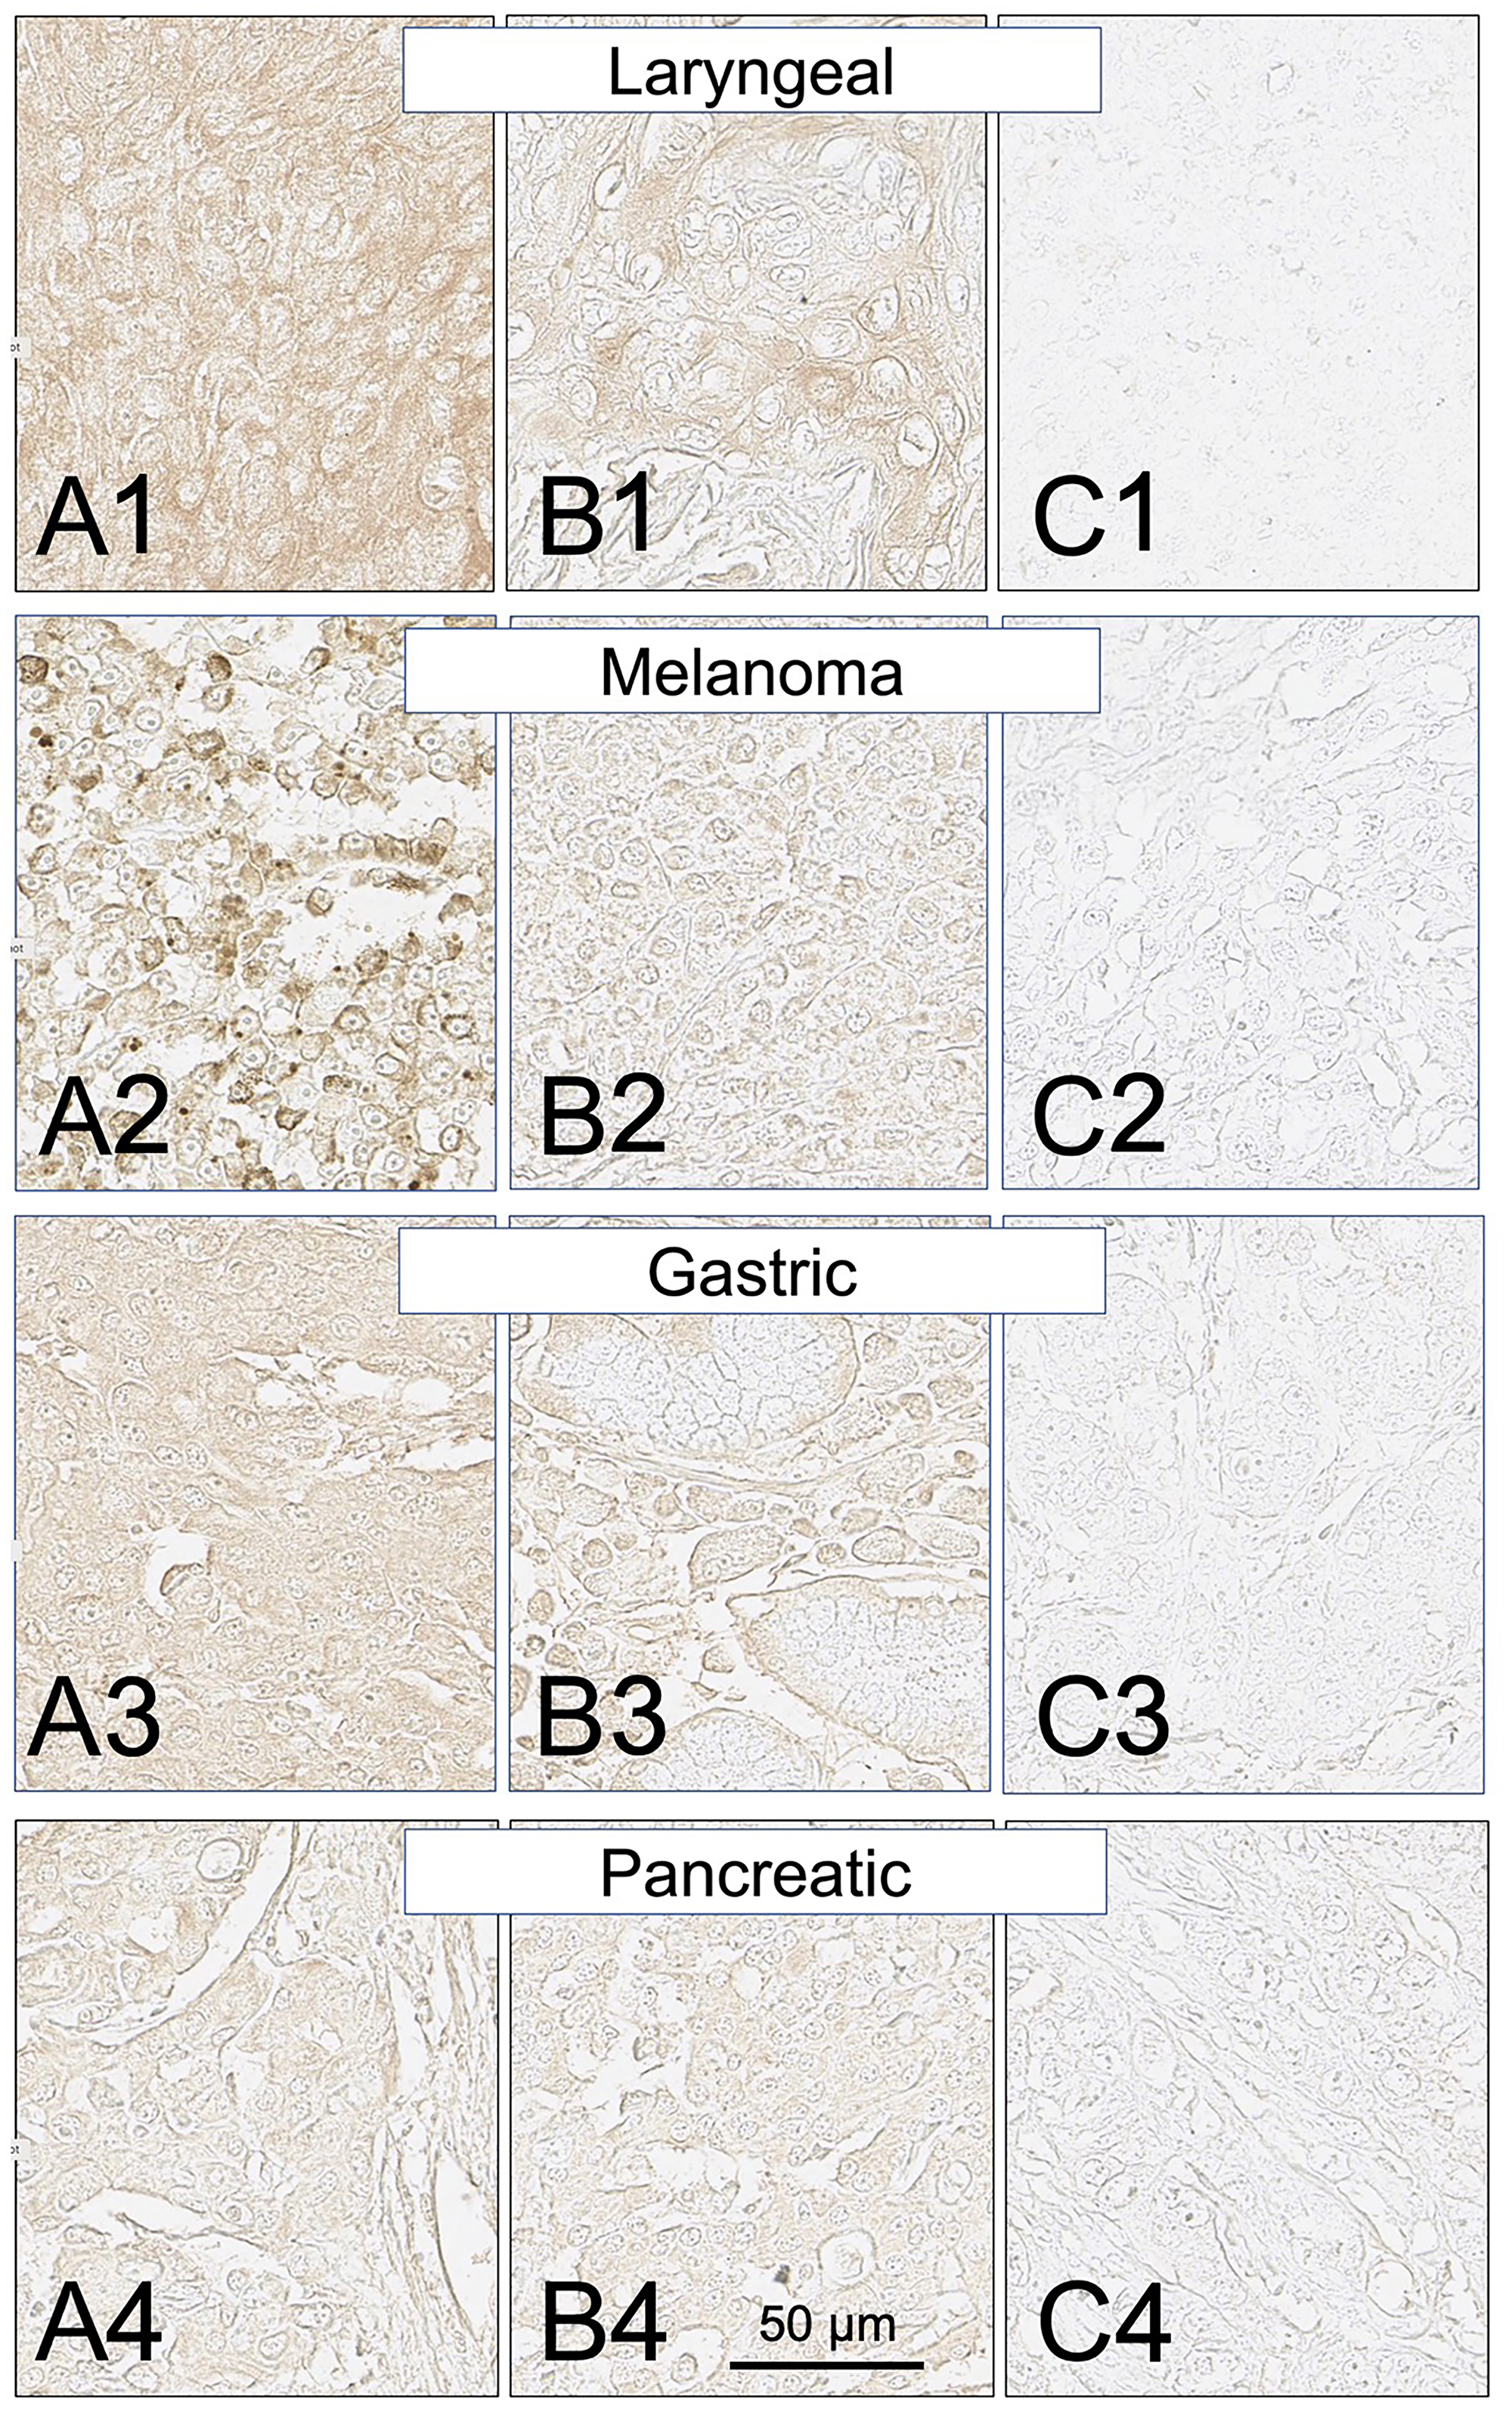 SH7129 stained sections of representative laryngeal, melanoma, gastric, and pancreatic cancers expressing HLA-DRs targeted by SH7139.